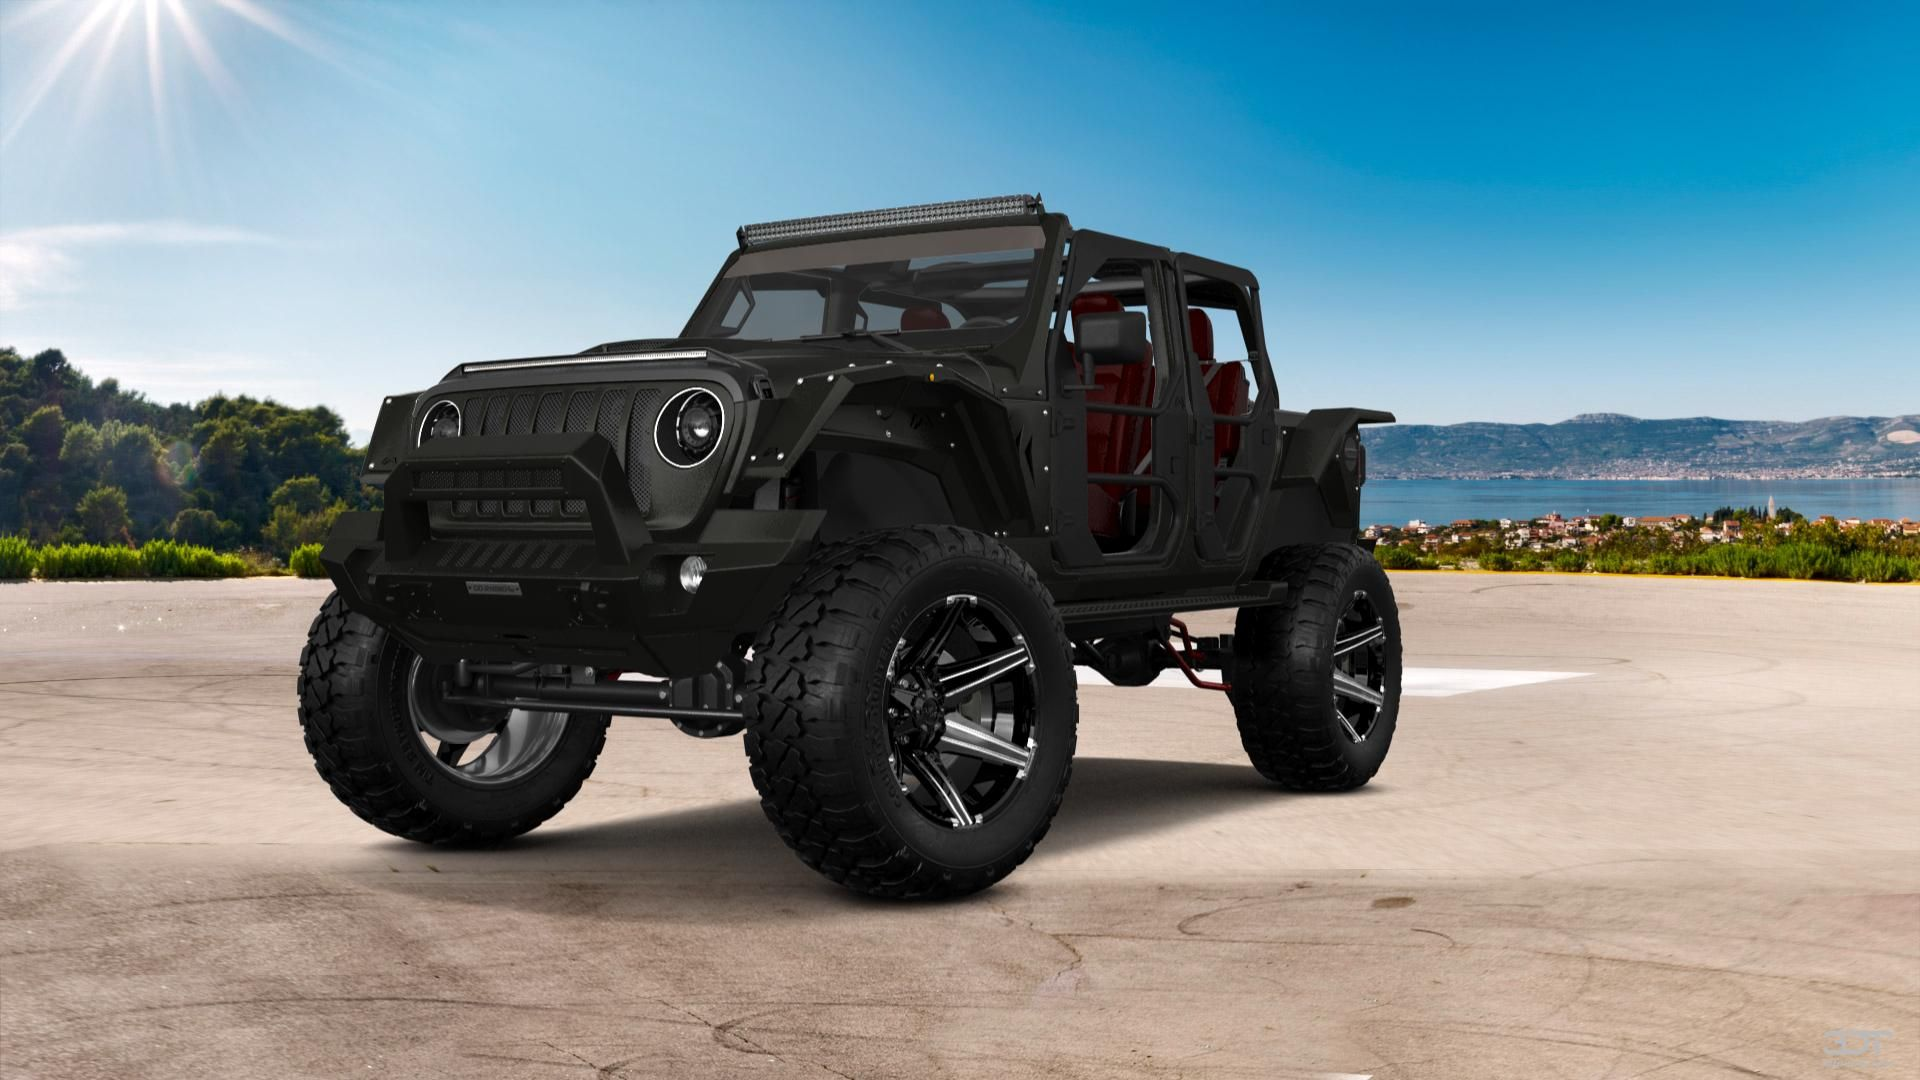 Checkout My Tuning Jeep Wranglerrubicon Jl 2018 At 3dtuning 3dtuning Tuning Jeep Wrangler Rubicon Wrangler Rubicon Jeep